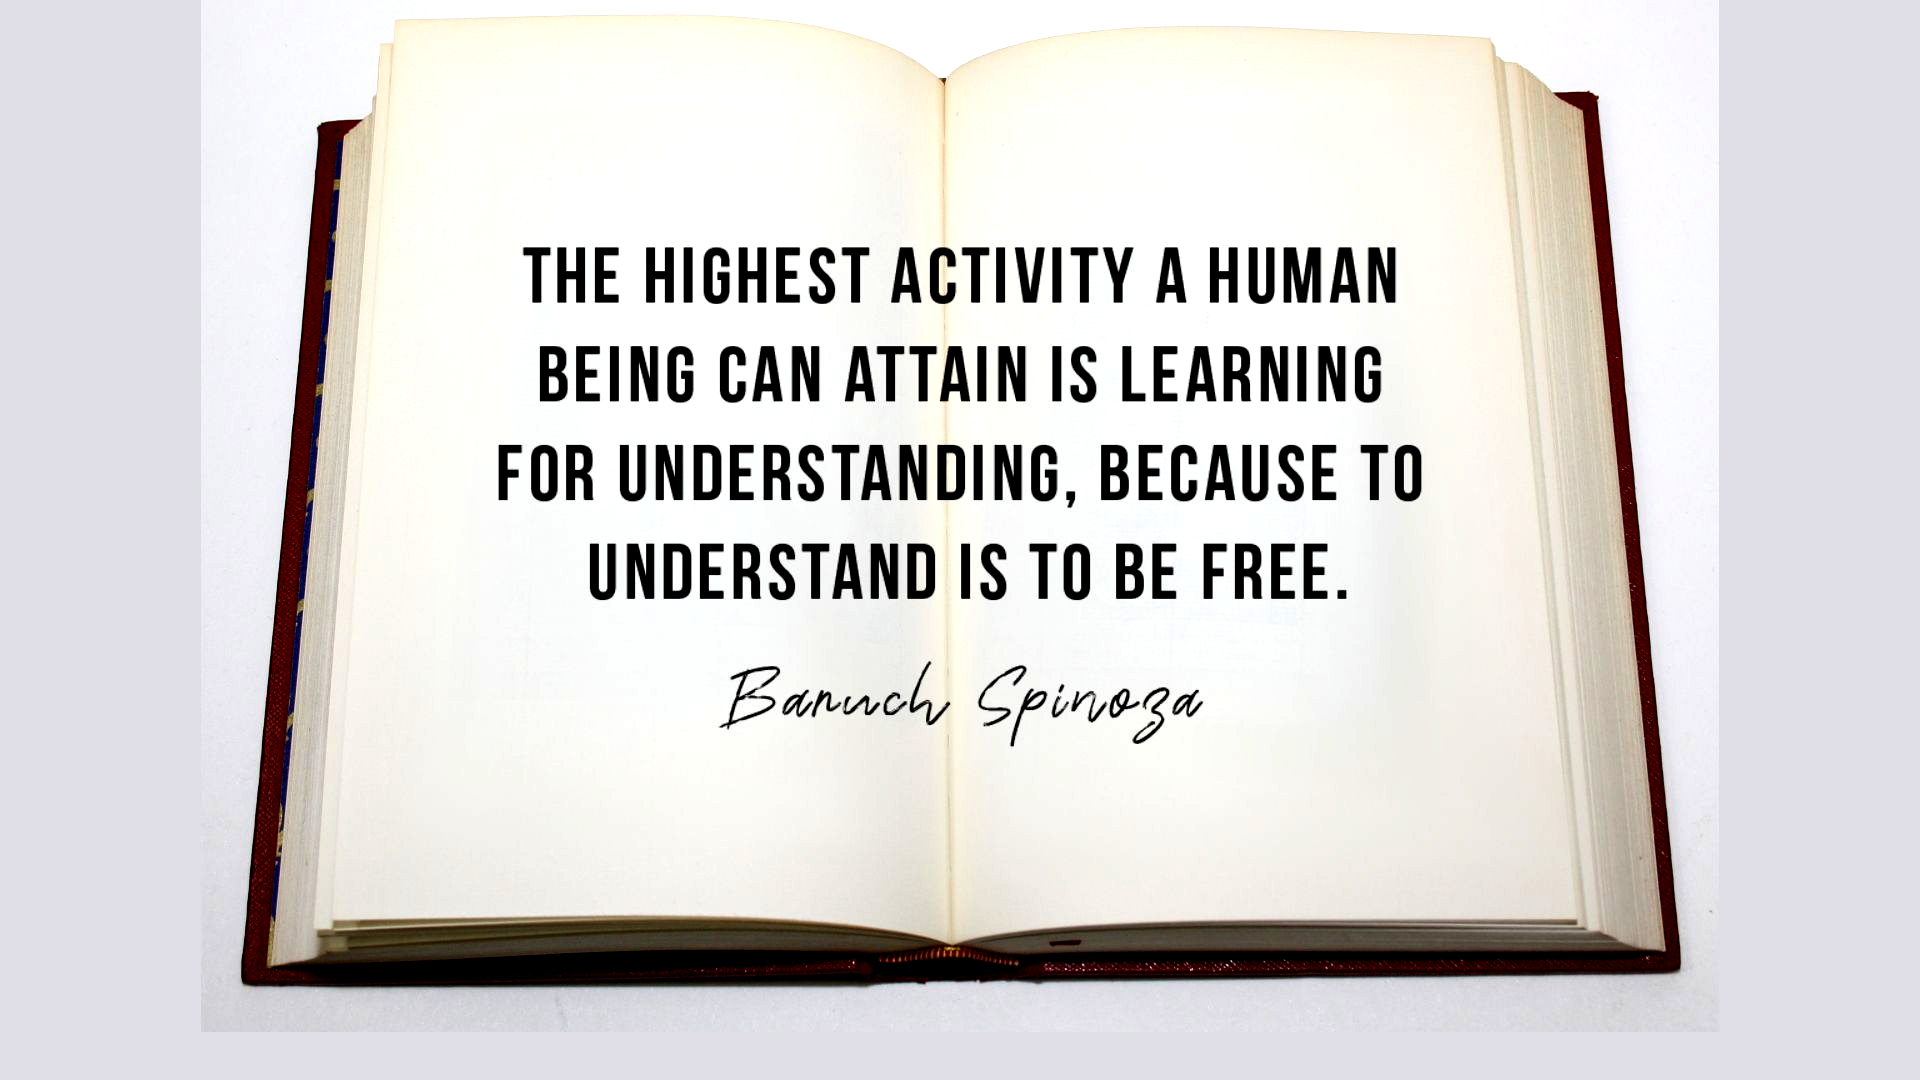 Education Quotes Education Quotes Learning Education Quotes Wallpaper Education Q In 2020 Arts Education Quotes Importance Of Education Quotes Good Education Quotes